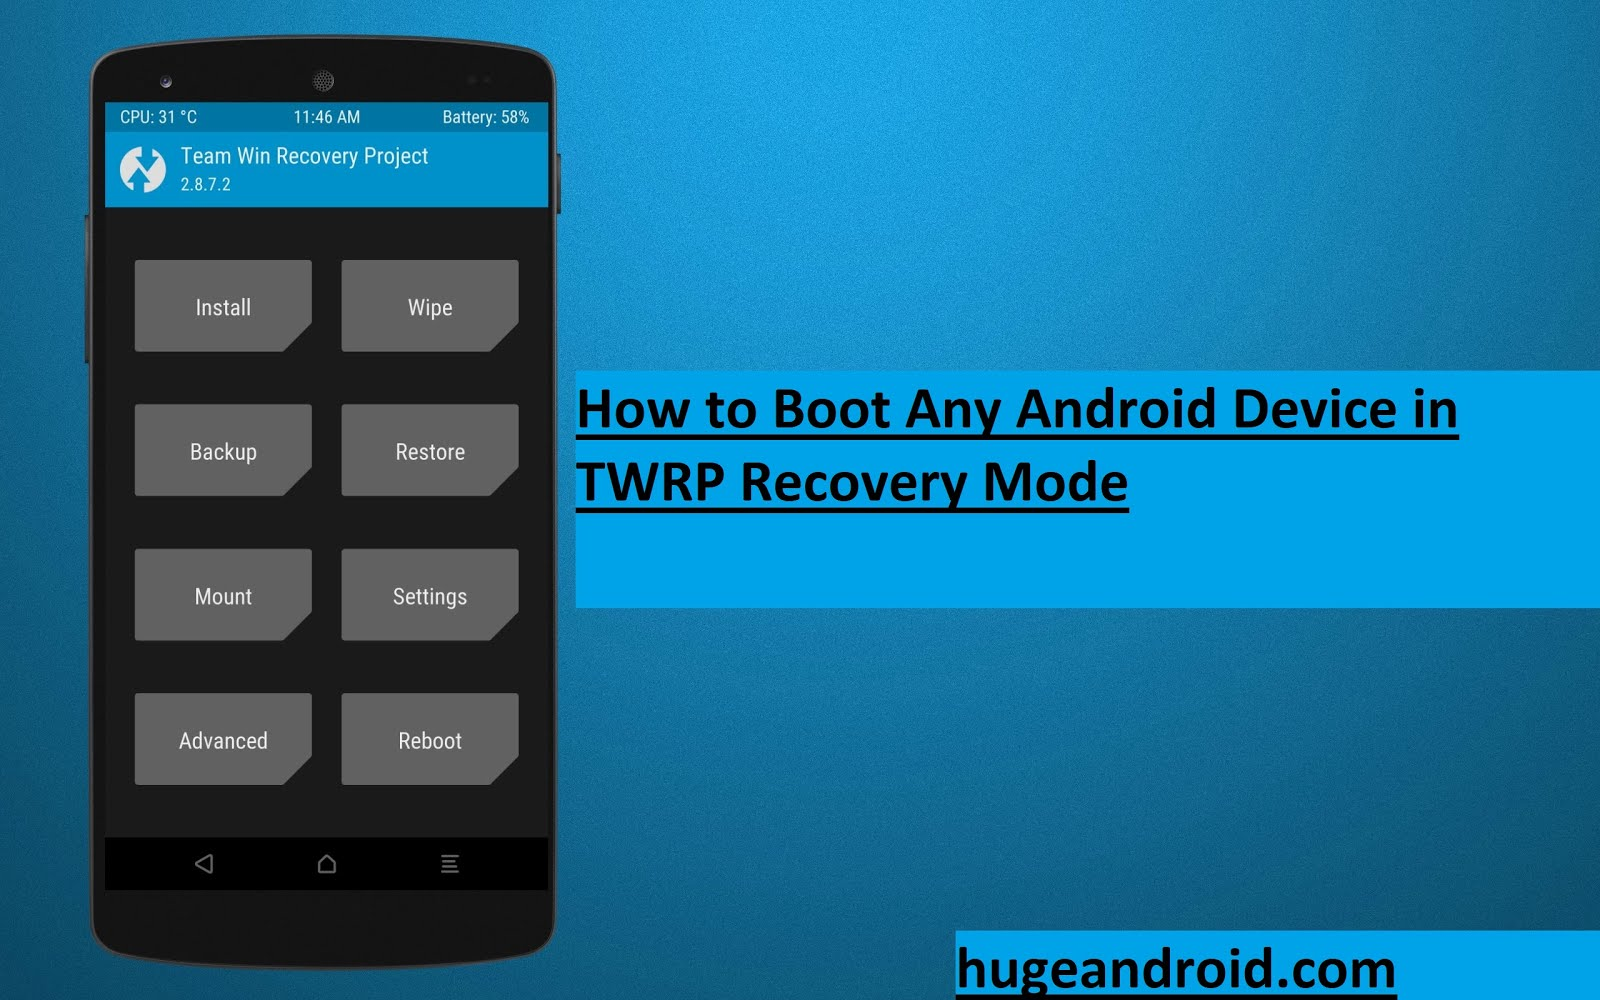 How to Boot Any Android Device in TWRP Recovery Mode